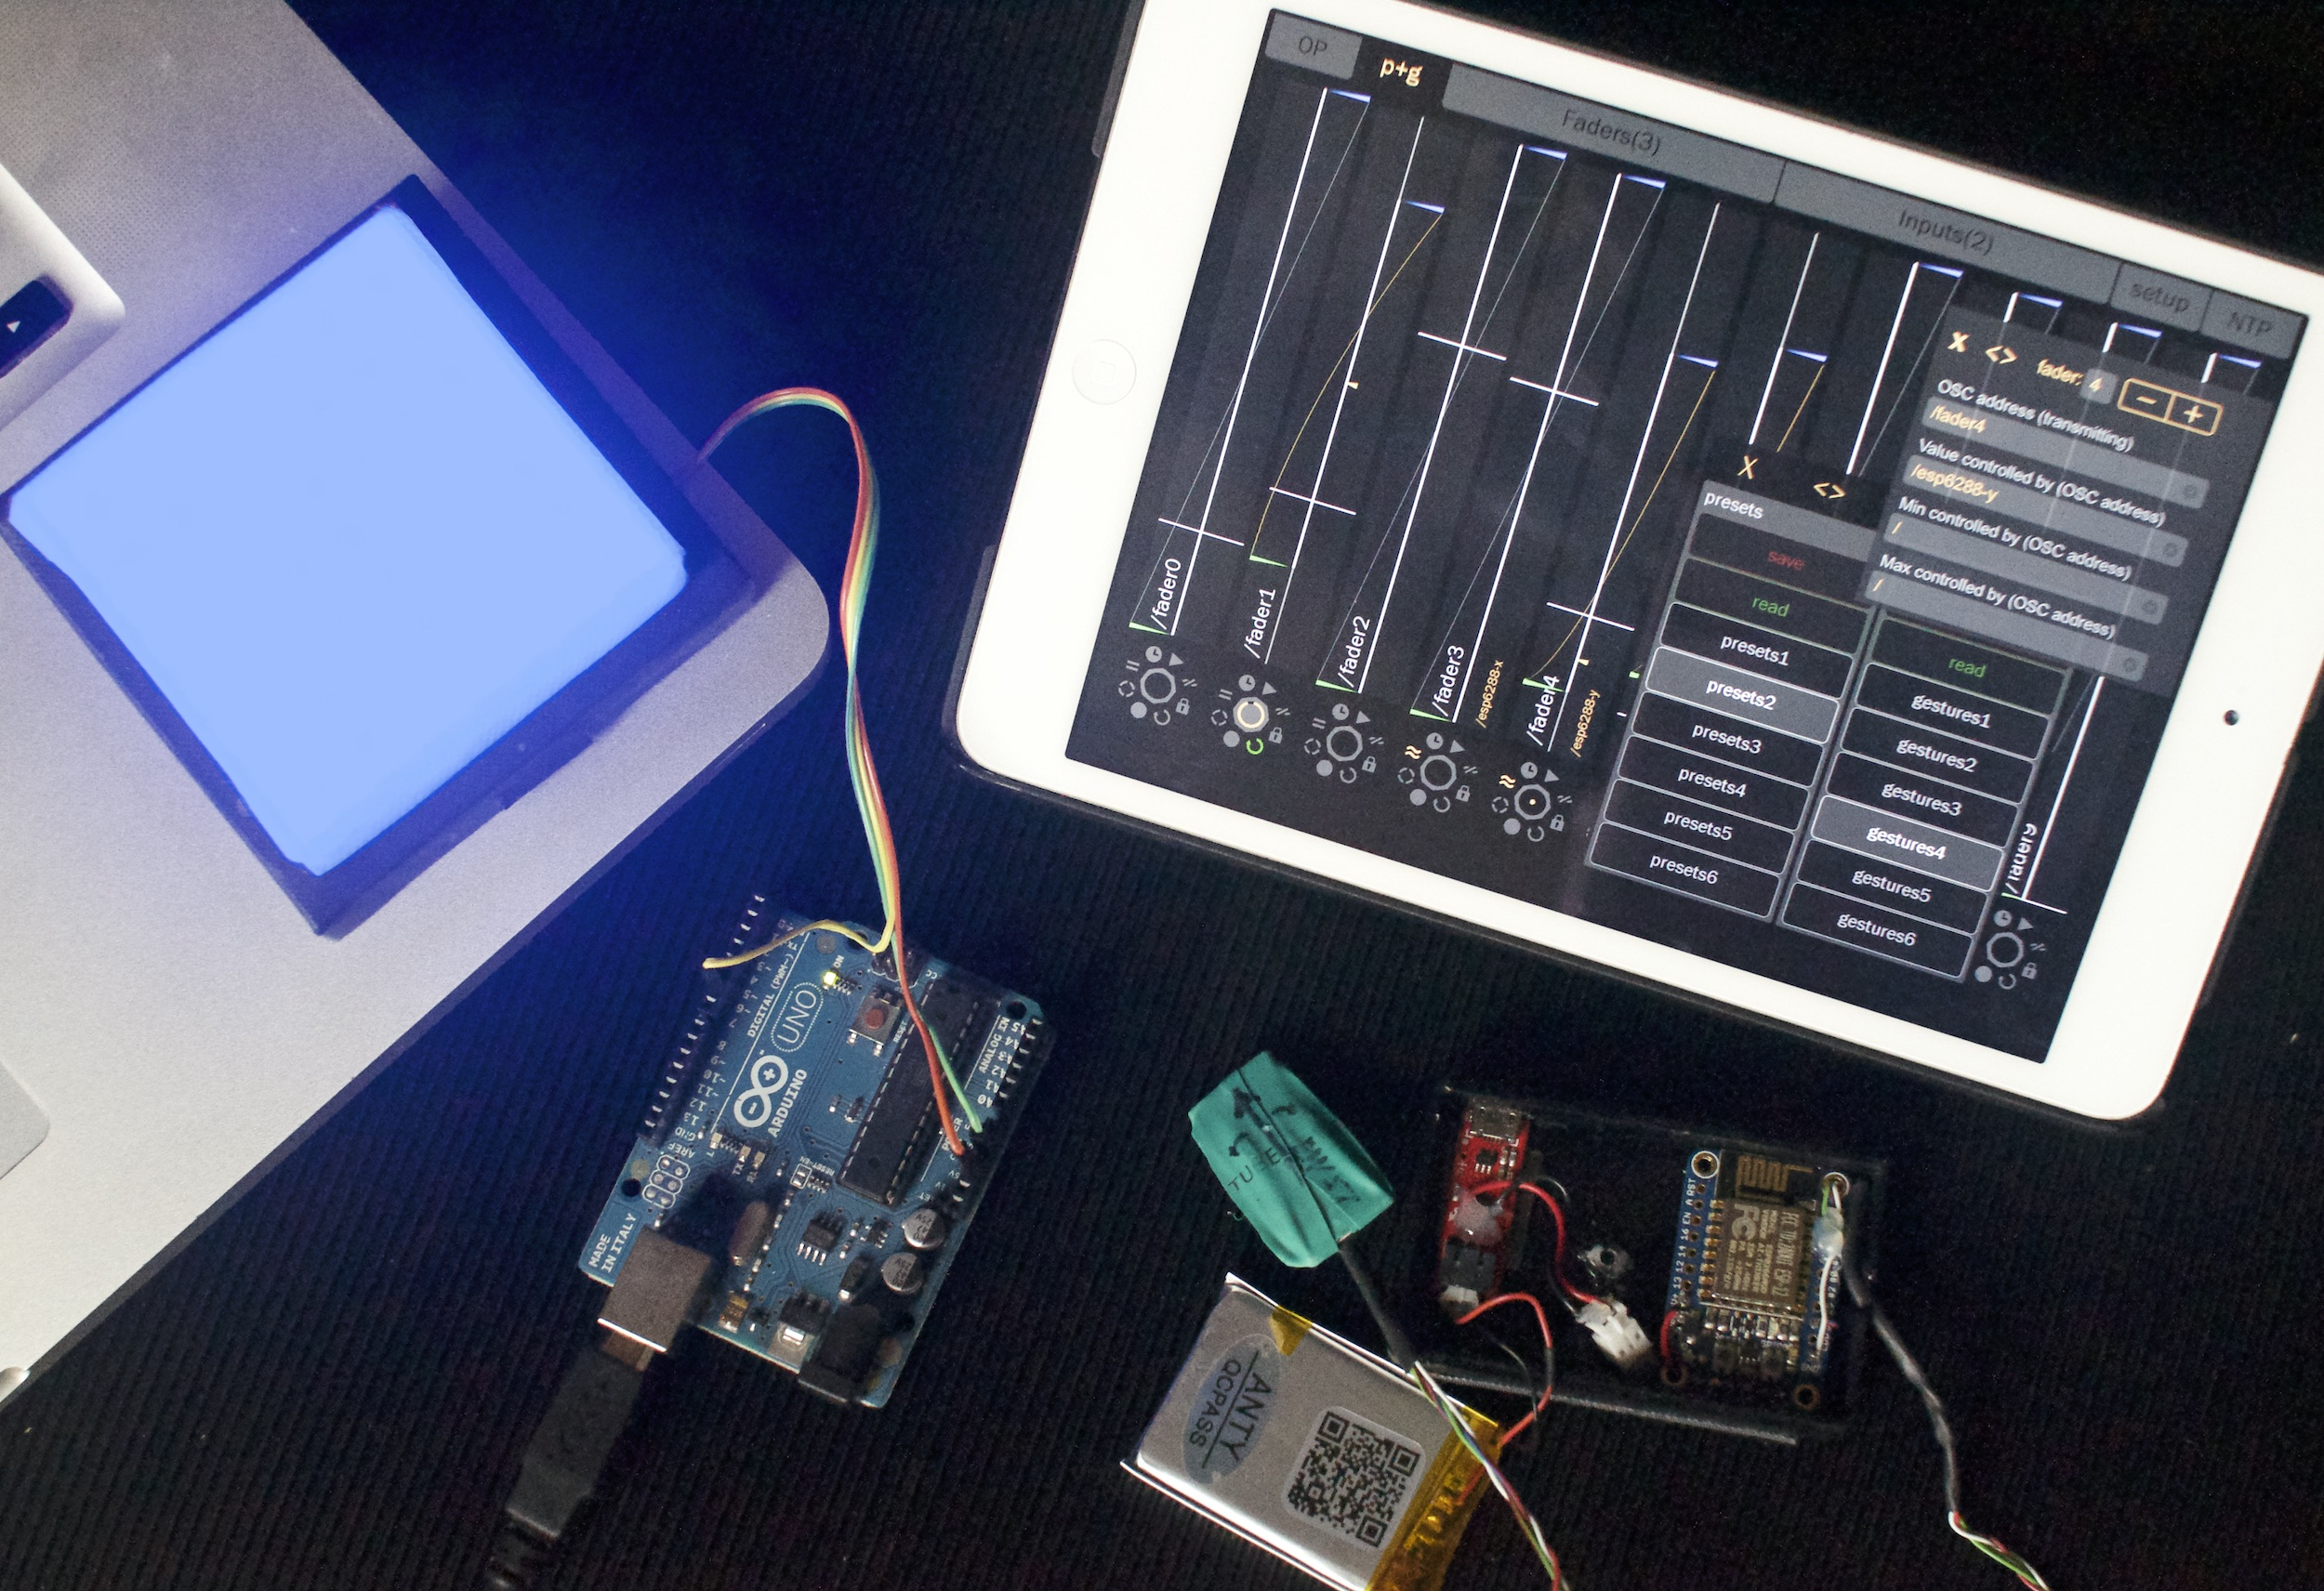 Parat+ with EPS8266 by Adafruit with LSM9S0 controlling a 64